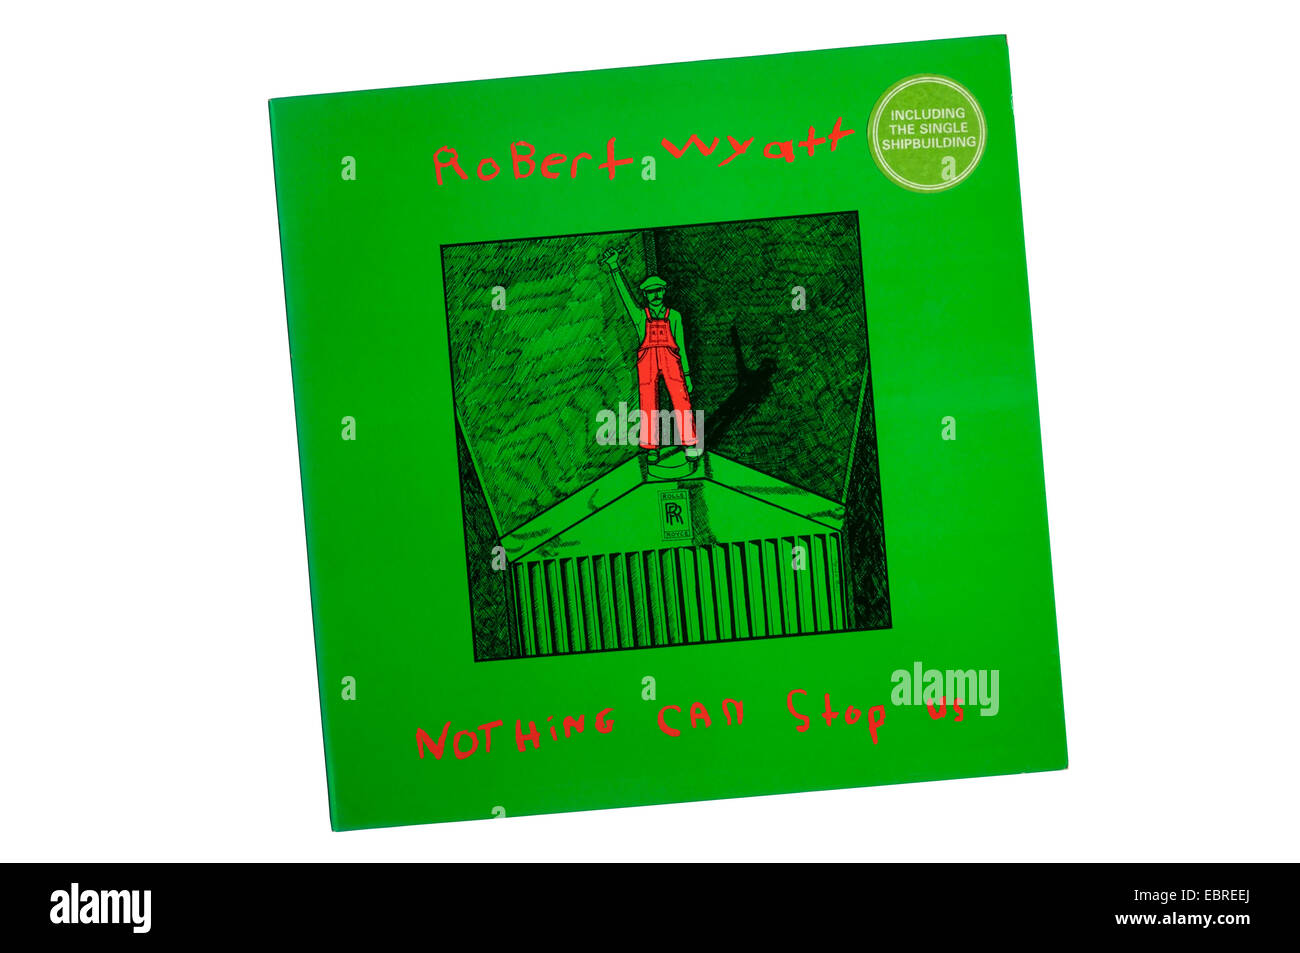 Nothing Can Stop Us was a compilation album by Robert Wyatt released in 1982. - Stock Image